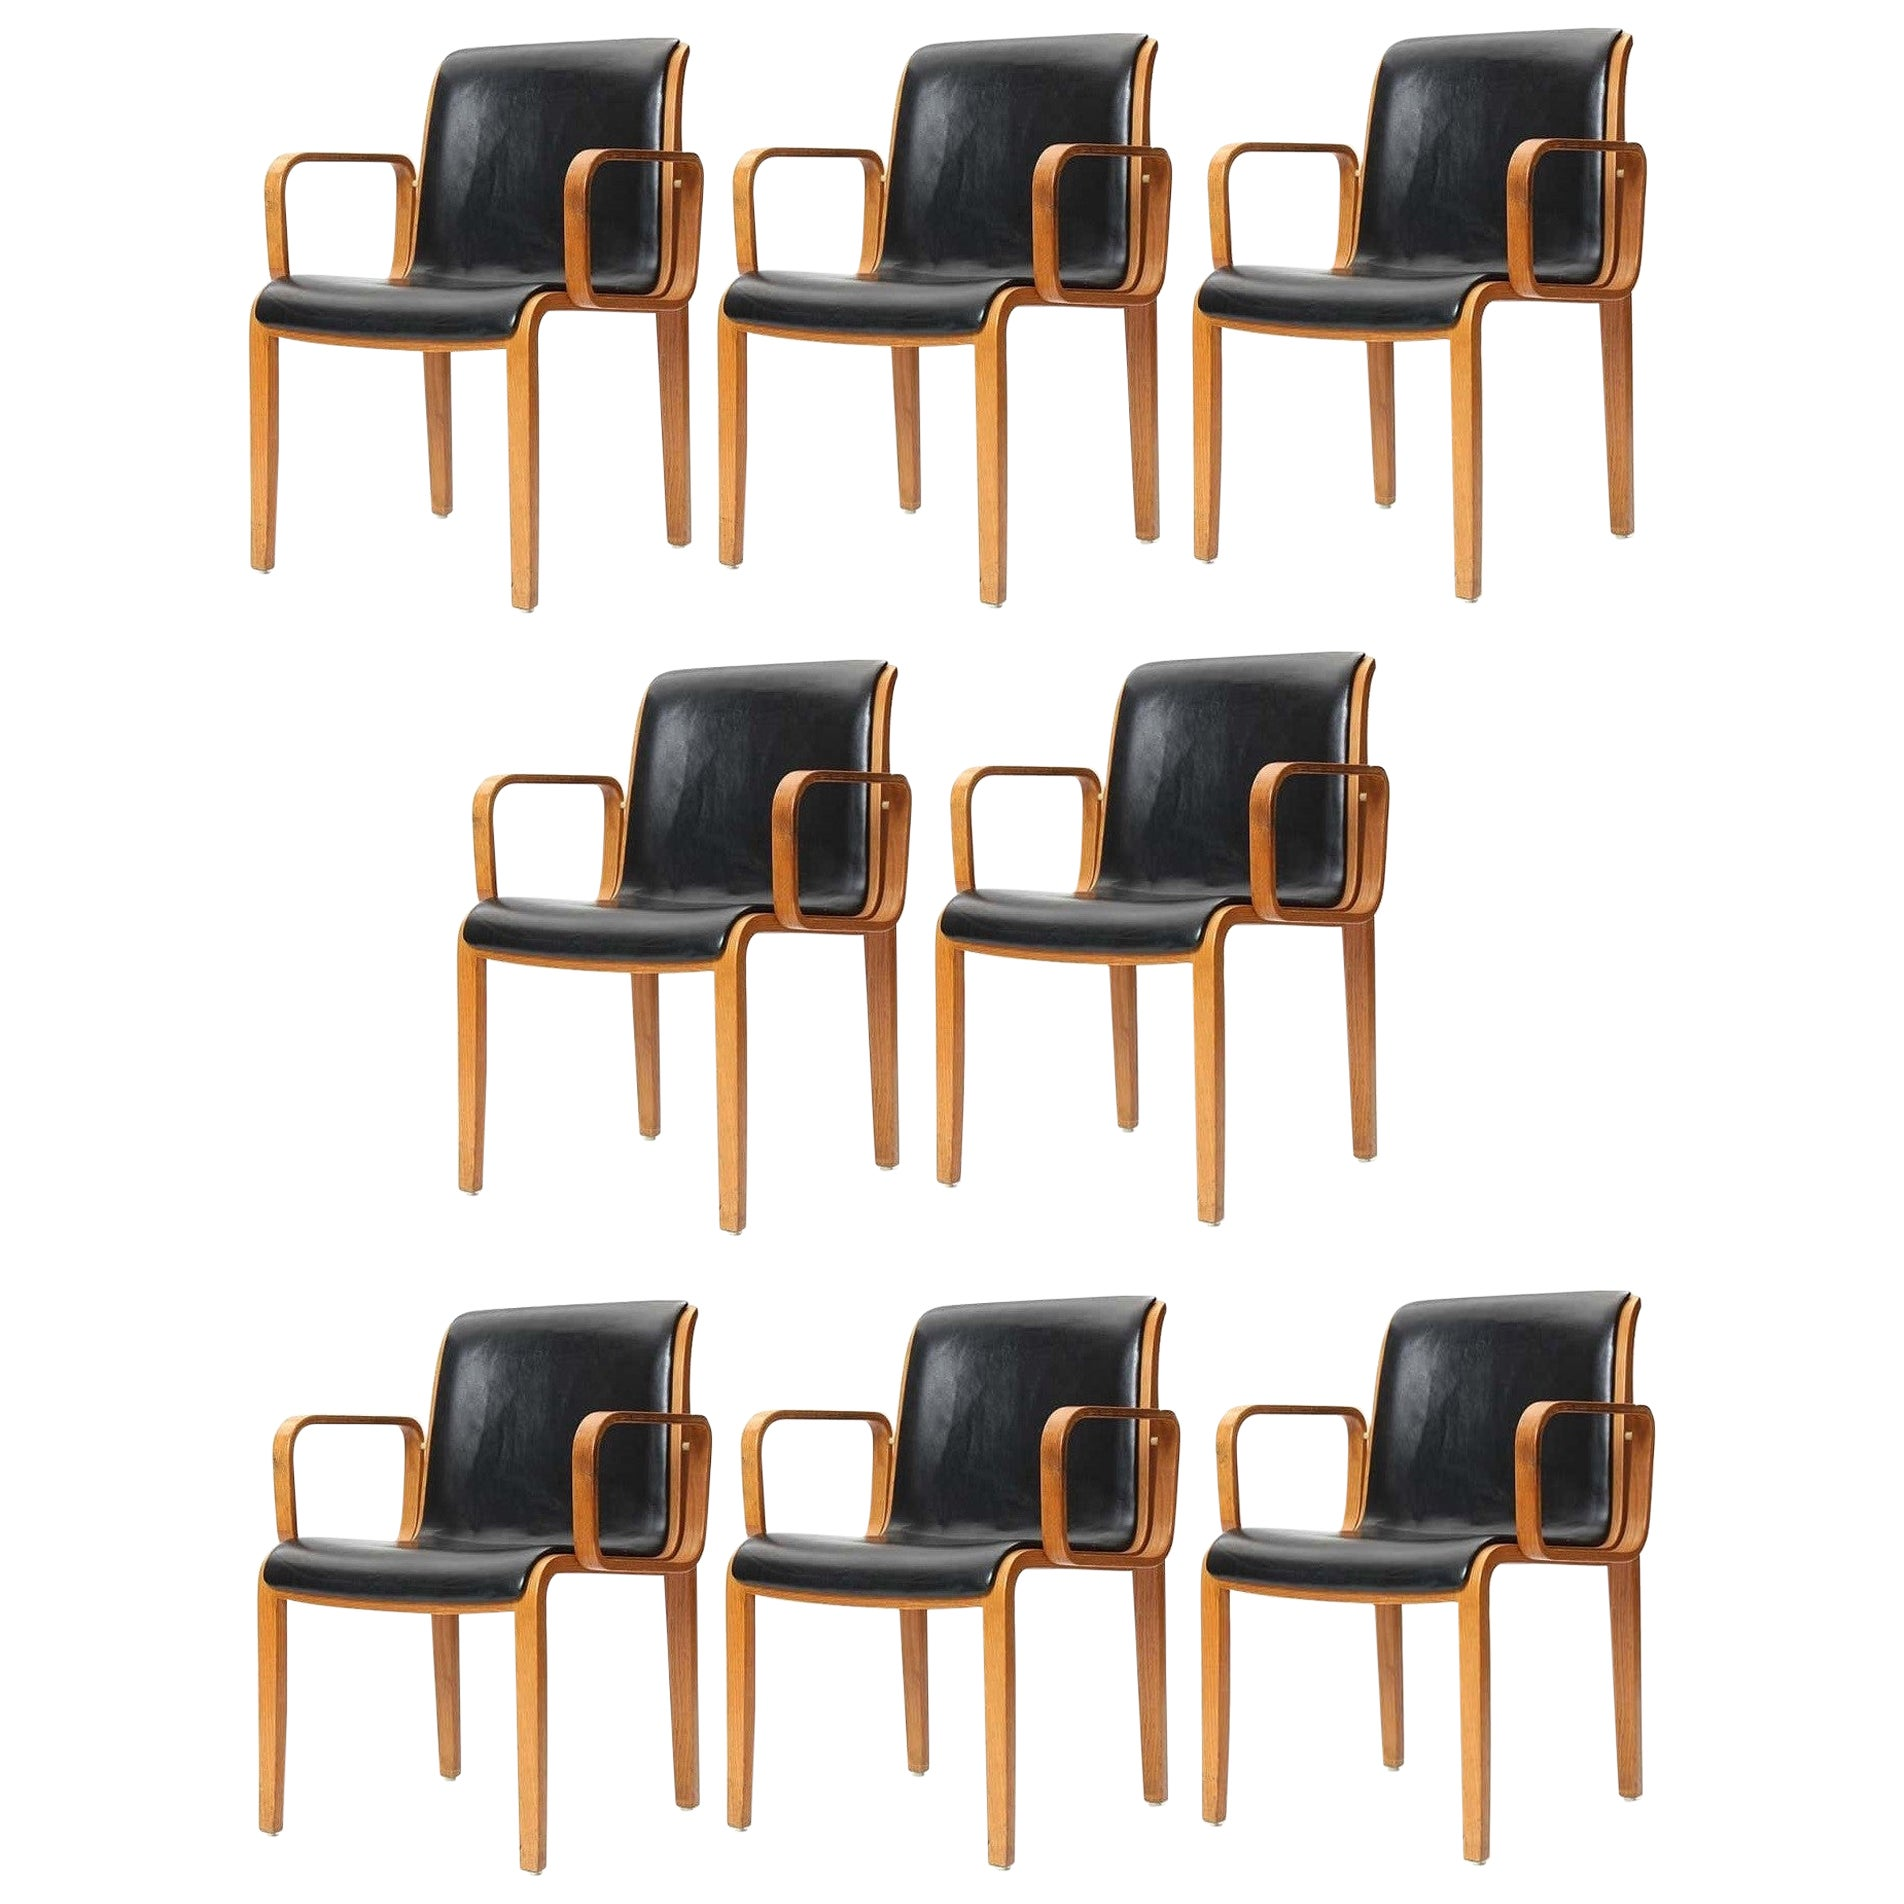 Eight Vintage Armchairs by Bill Stephens for Knoll